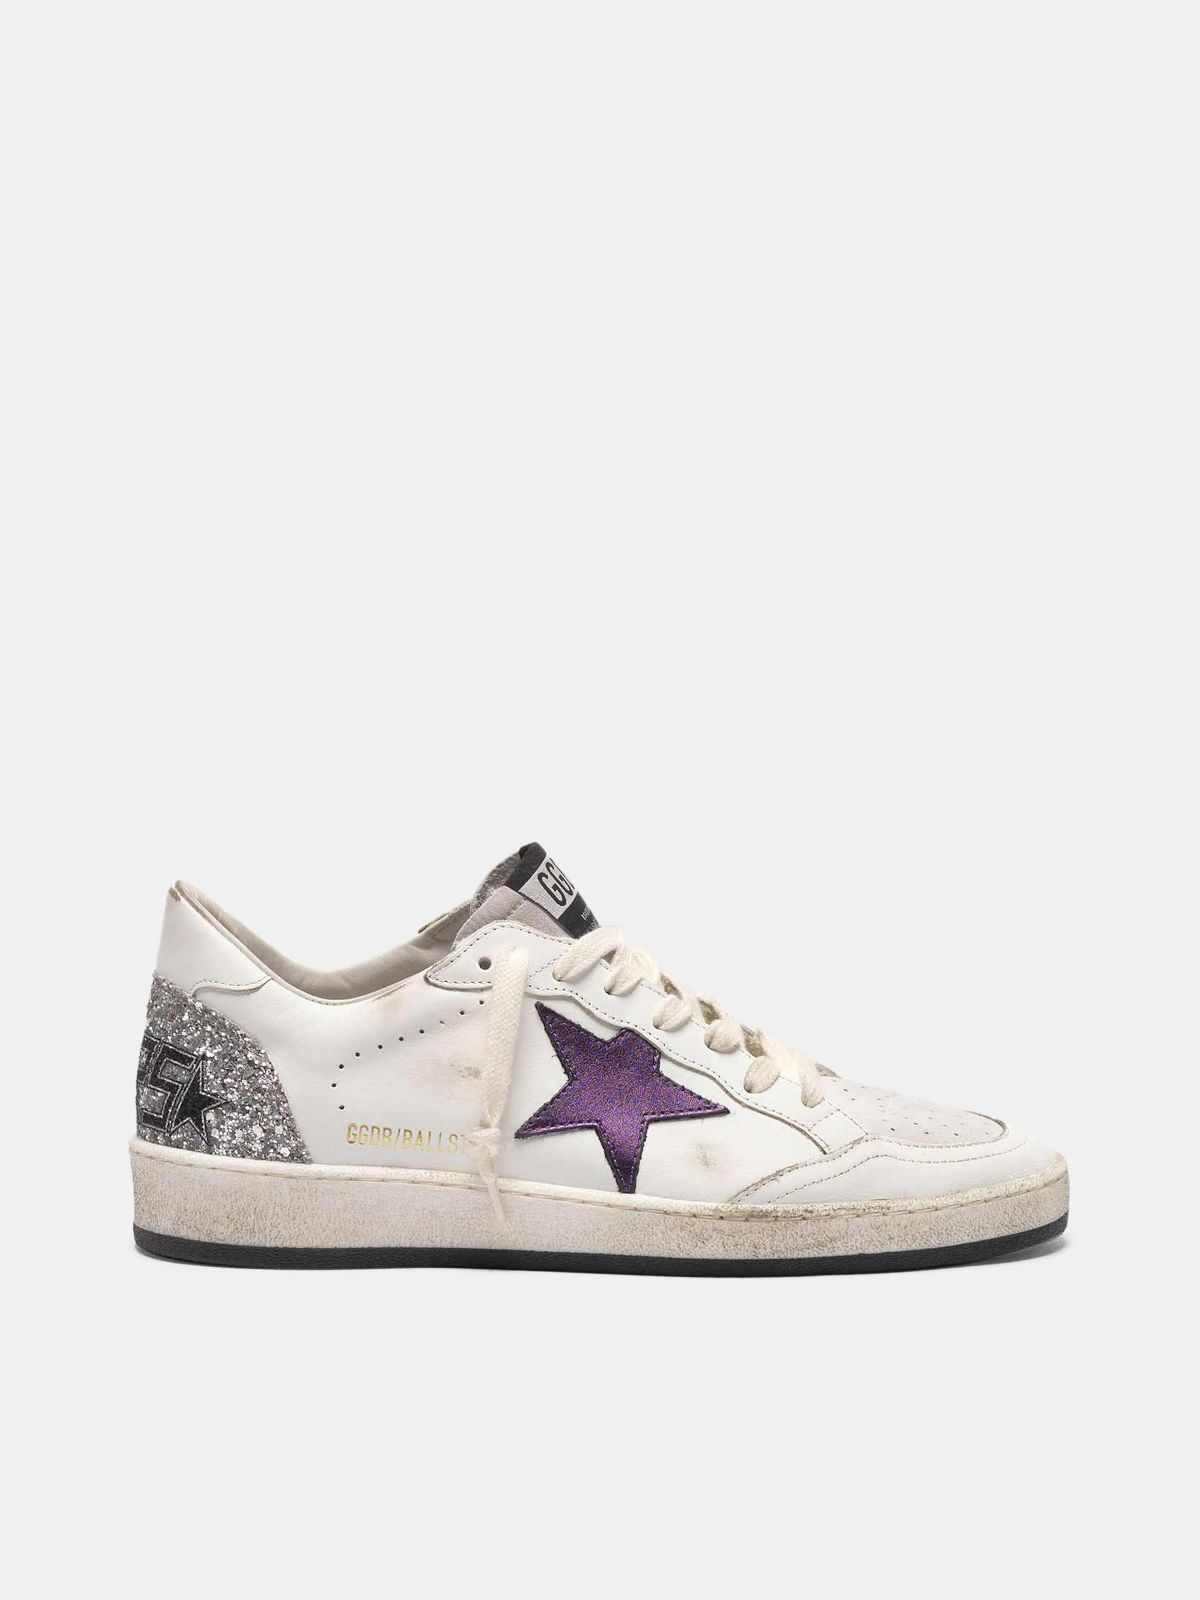 Golden Goose - Ball Star sneakers with metallic purple star and glitter back in